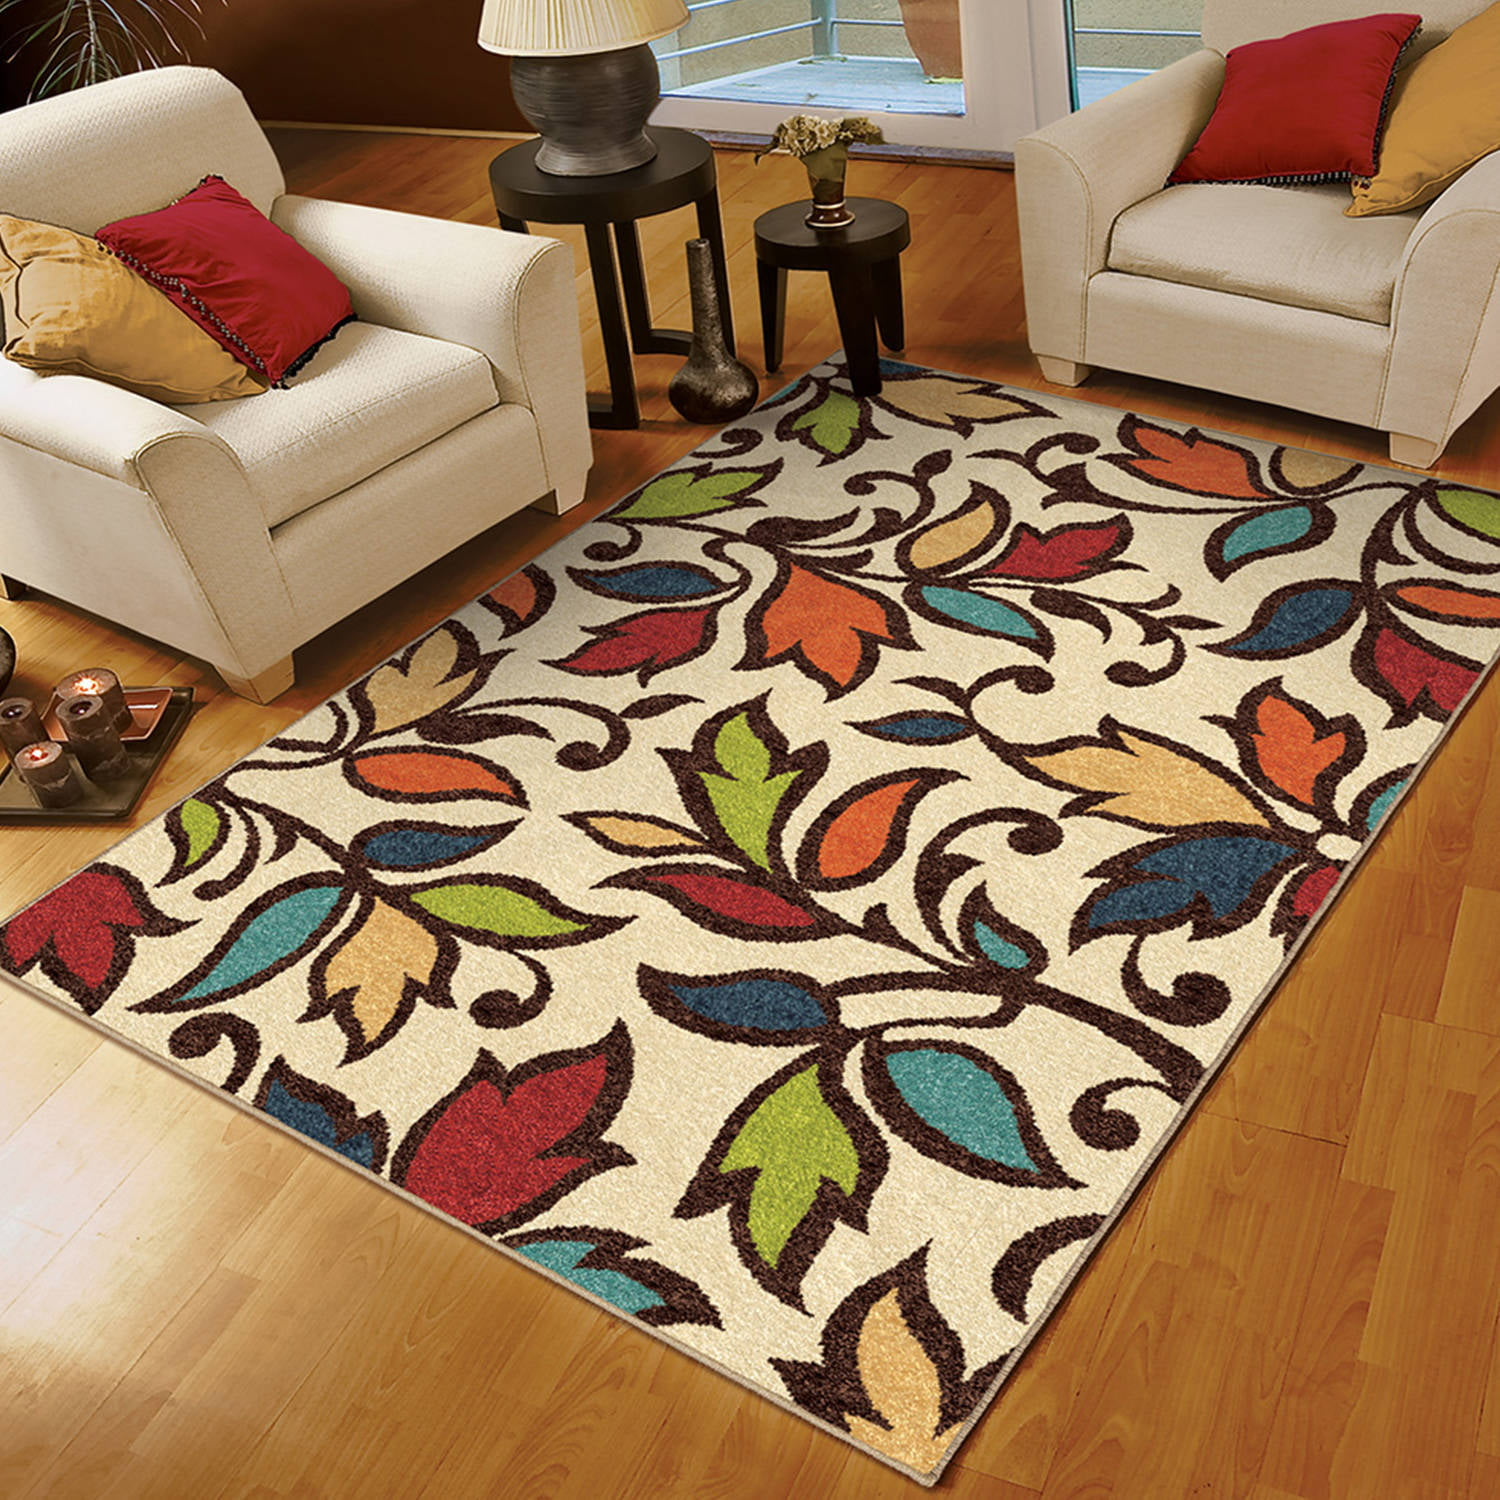 Marvelous Walmart Rugs For Living Room Frasesdeconquista Com Download Free Architecture Designs Embacsunscenecom